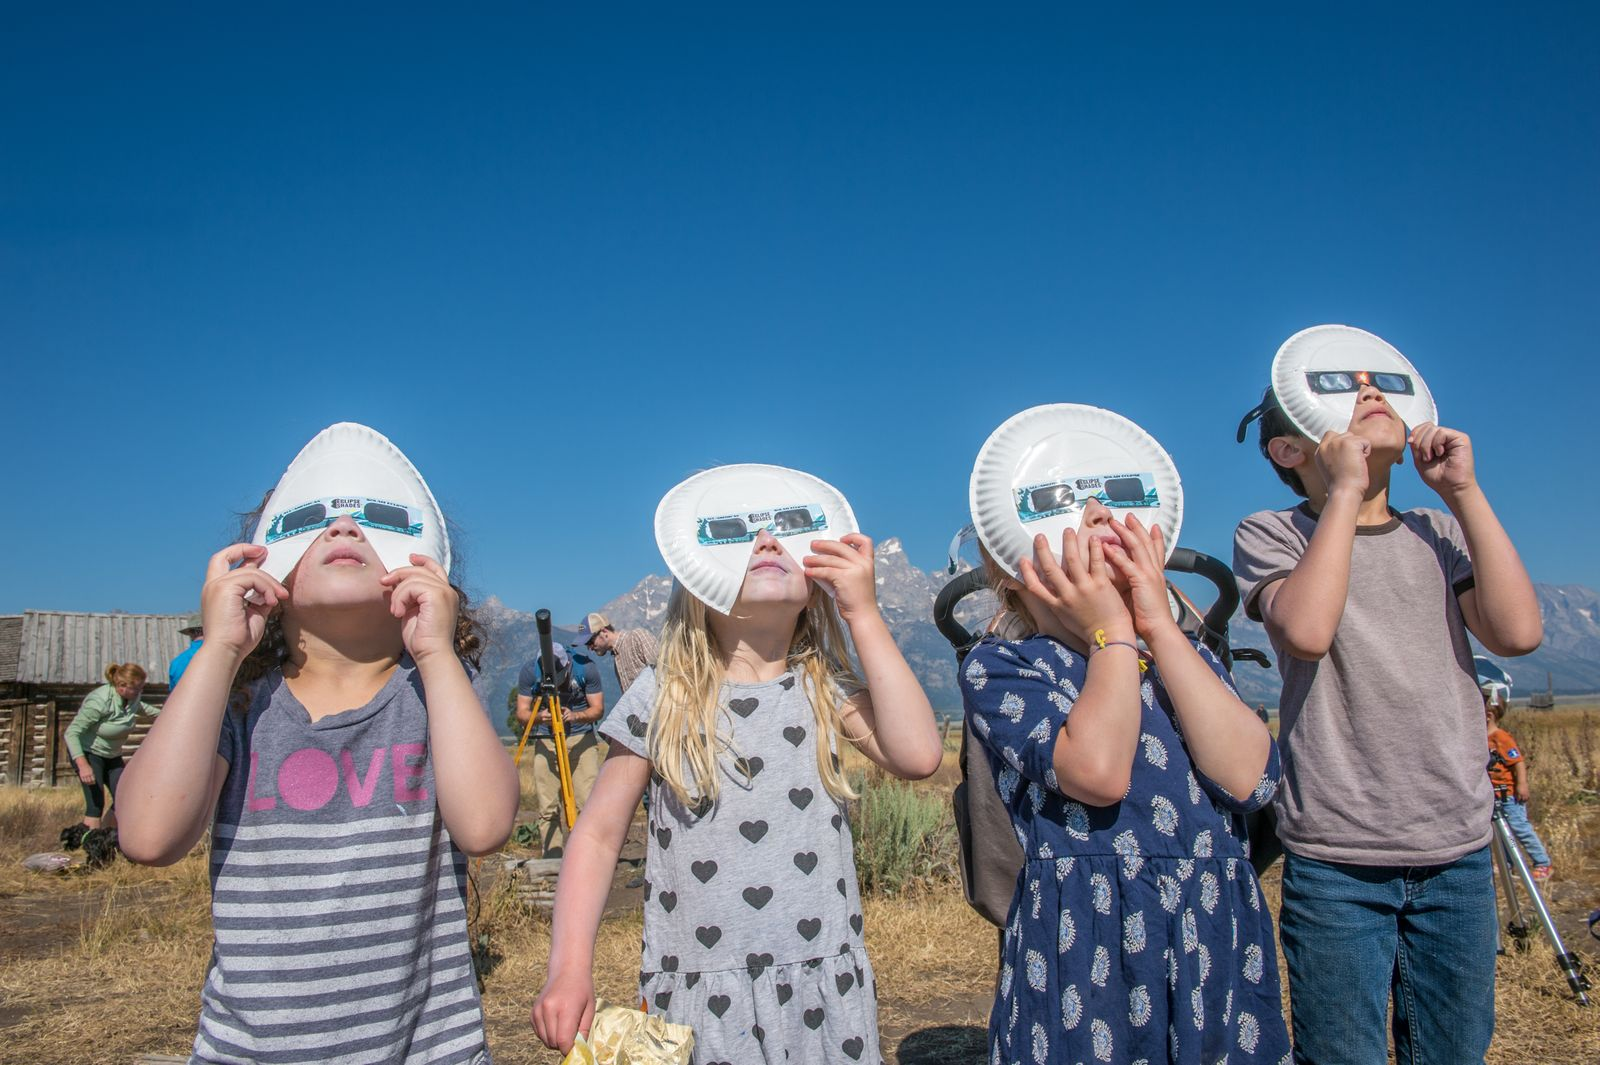 Group of children look up wearing eclipse glasses to watch Solar Eclipse, Grand Tetons National Park, Teton County, Wyoming